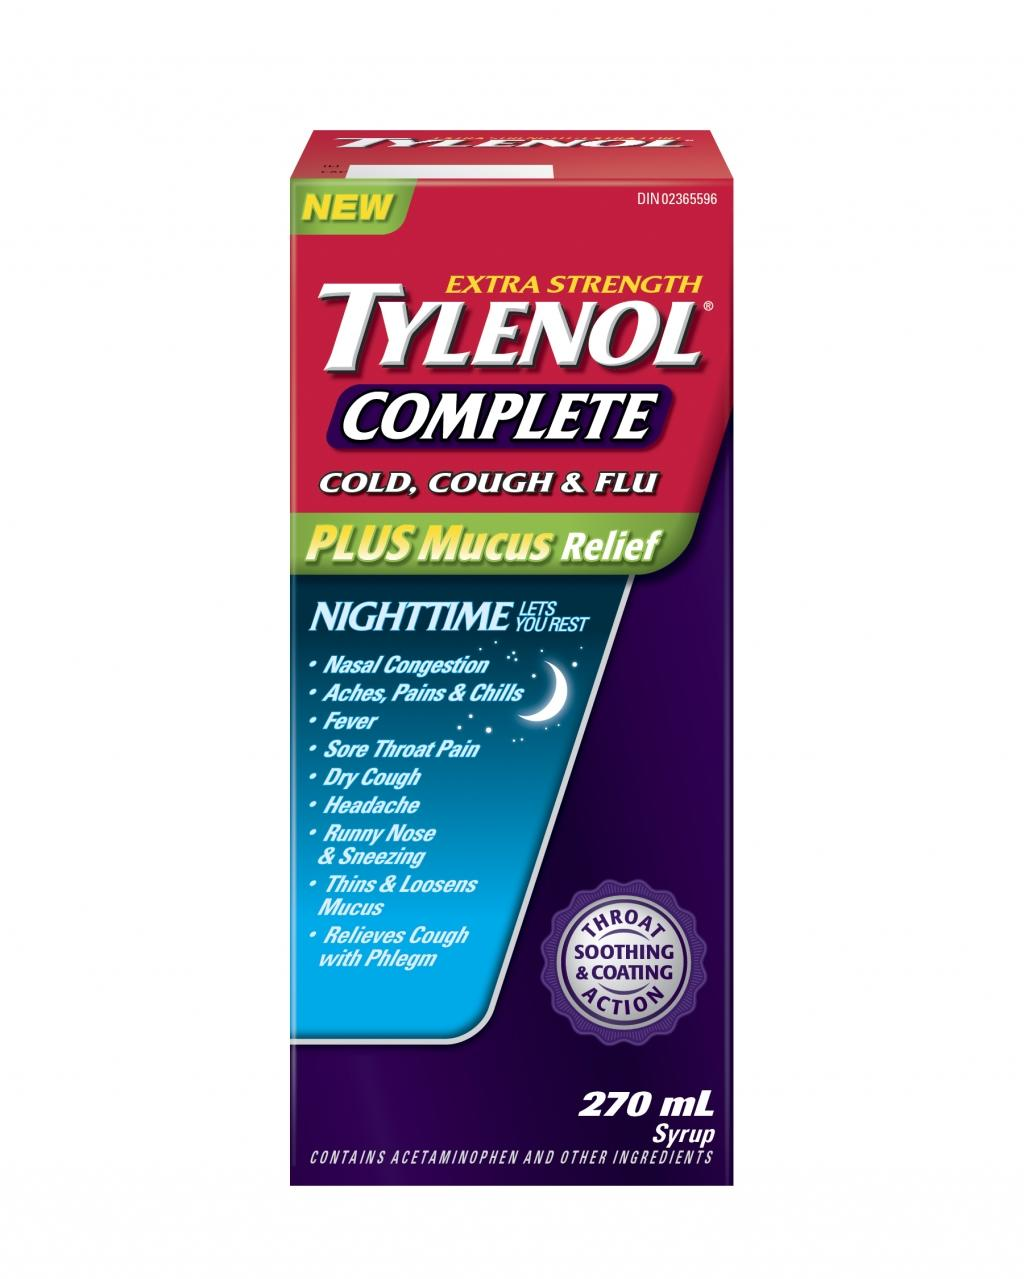 Dry cough mixture: reviews 29